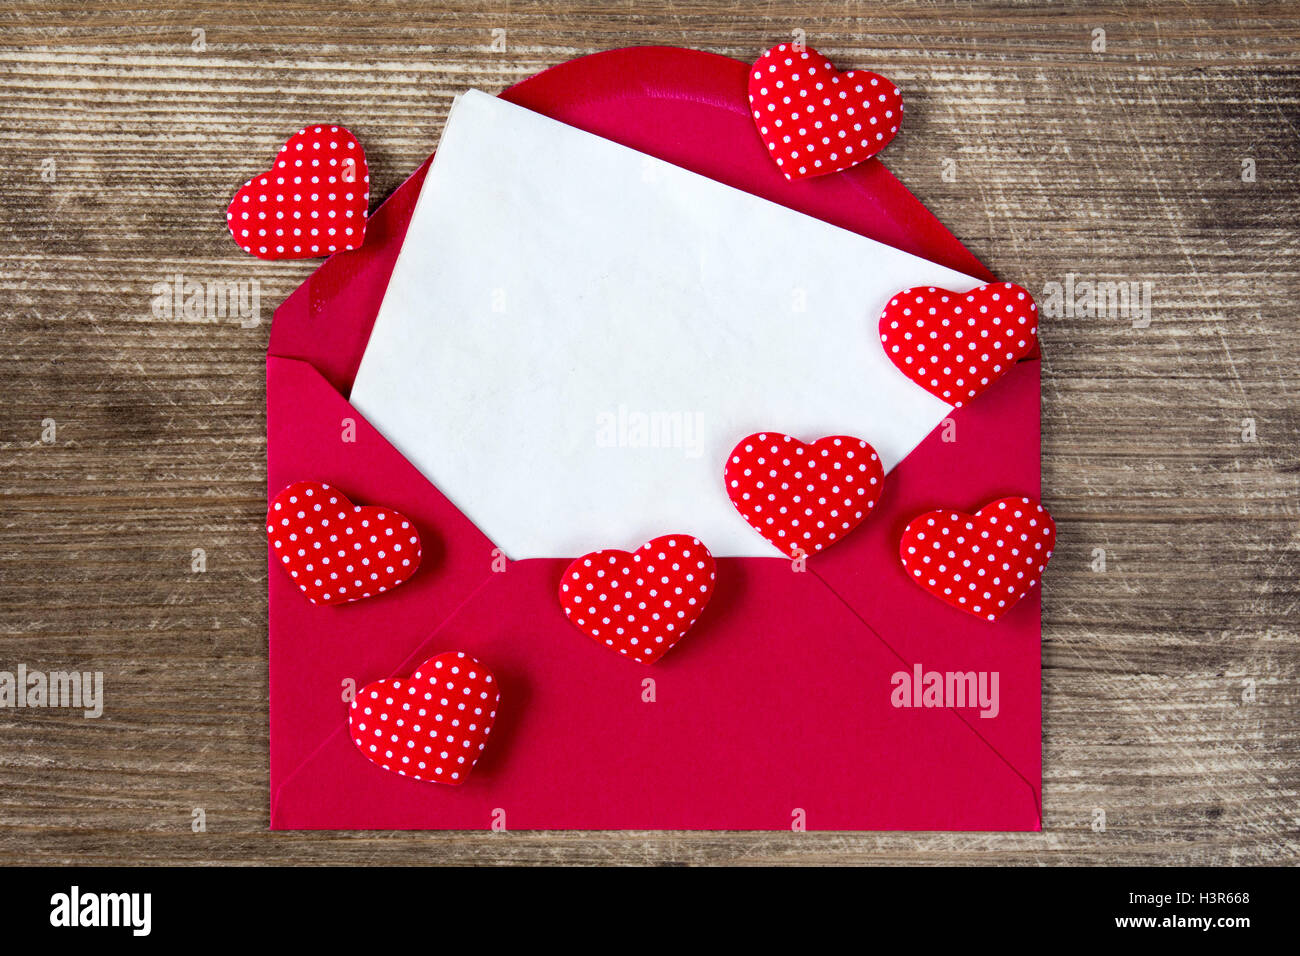 Open envelope with love letter and red hearts on the wooden